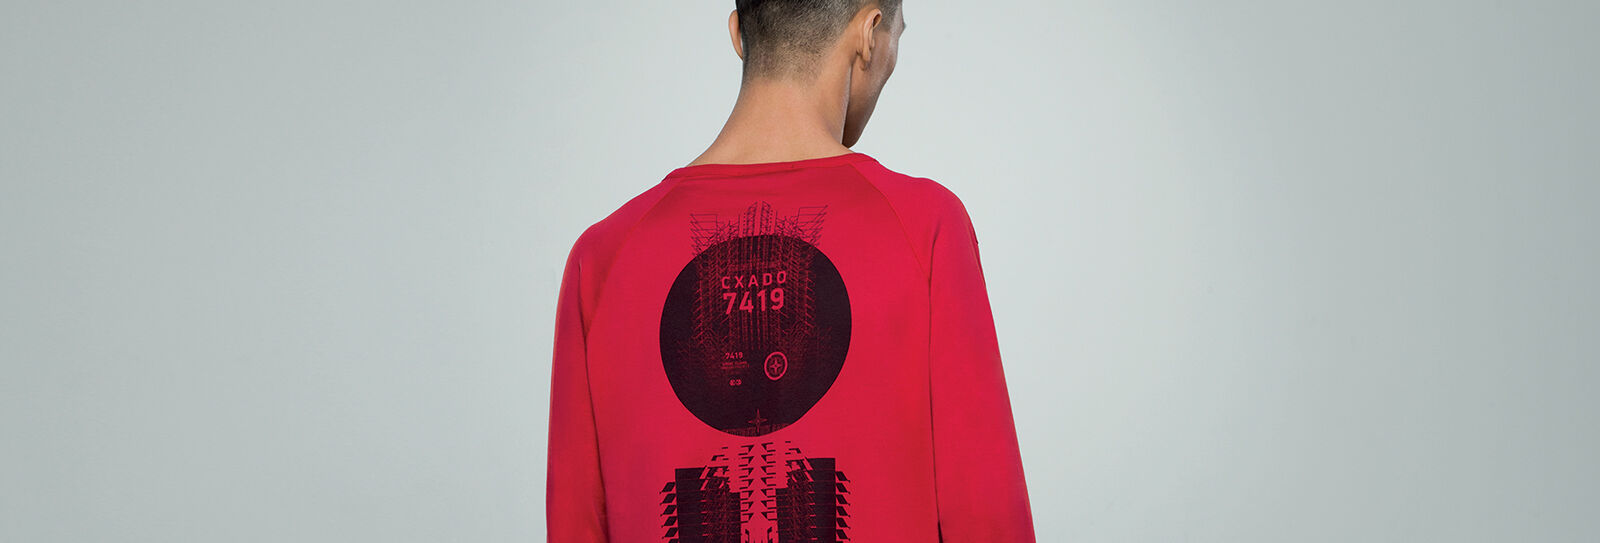 Model showing the back of a red crewneck t shirt with long raglan sleeves and a black graphic print with a compass rose and lettering that reads CXADO 7419.